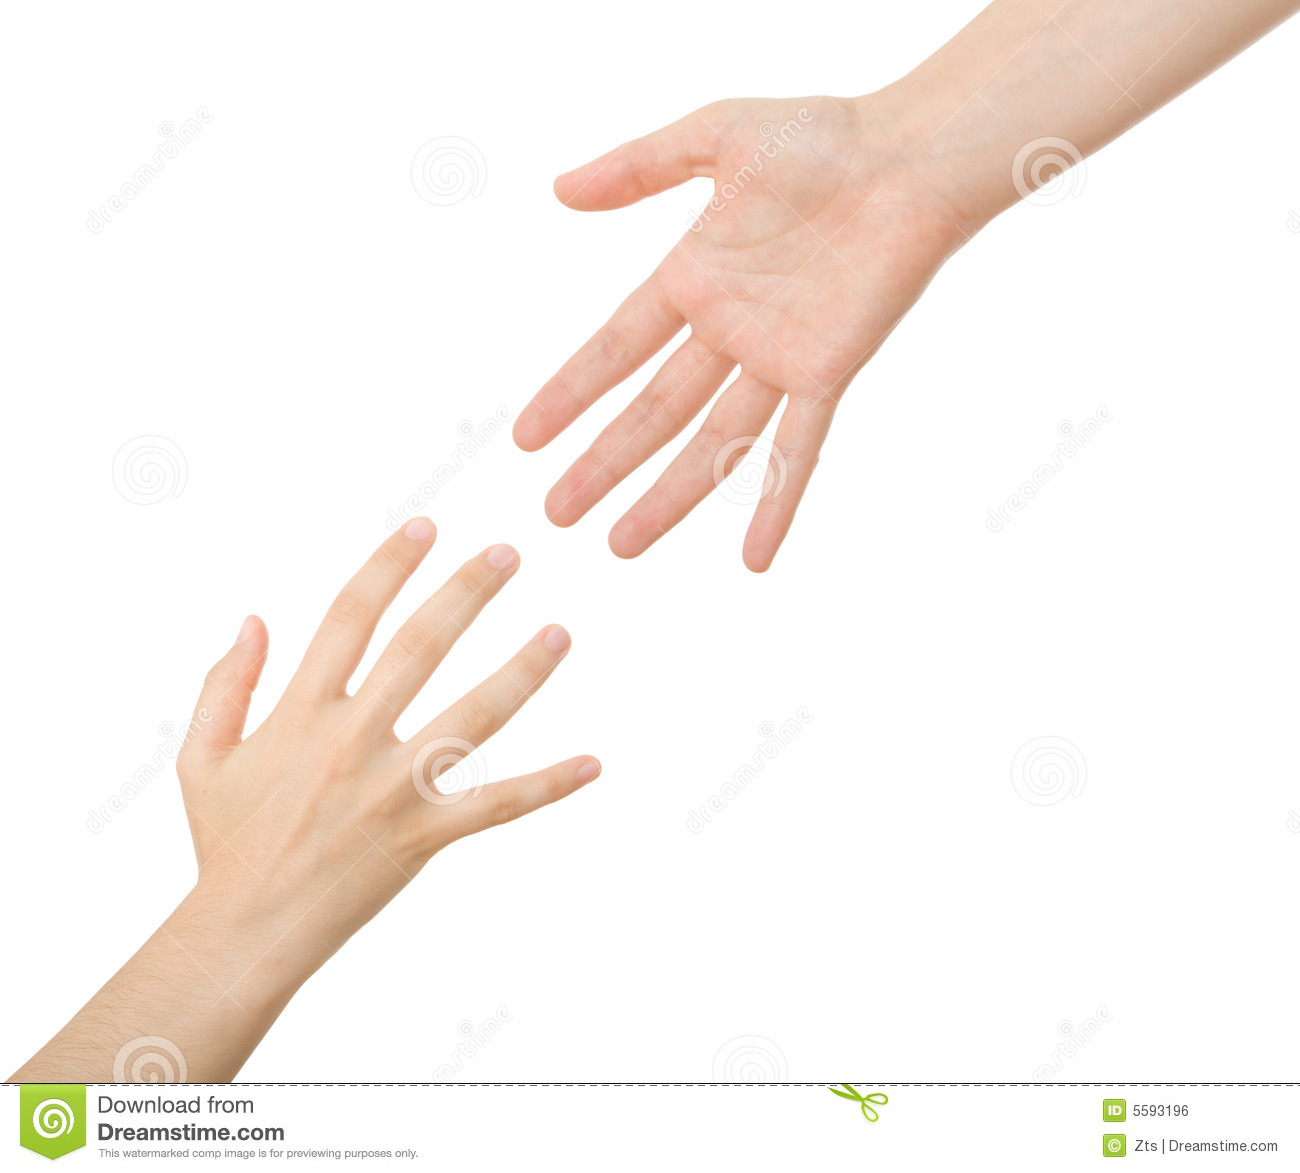 Silhouette Of Two Men Talking Illustration Vector 4779831 likewise Stock Image Reaching Hand Image1007361 also COLDhungarianU additionally Celtic Symbols additionally Justin Trudeau Meets Emmanuel Macron And Rest If Bromance 616265. on friendship hands